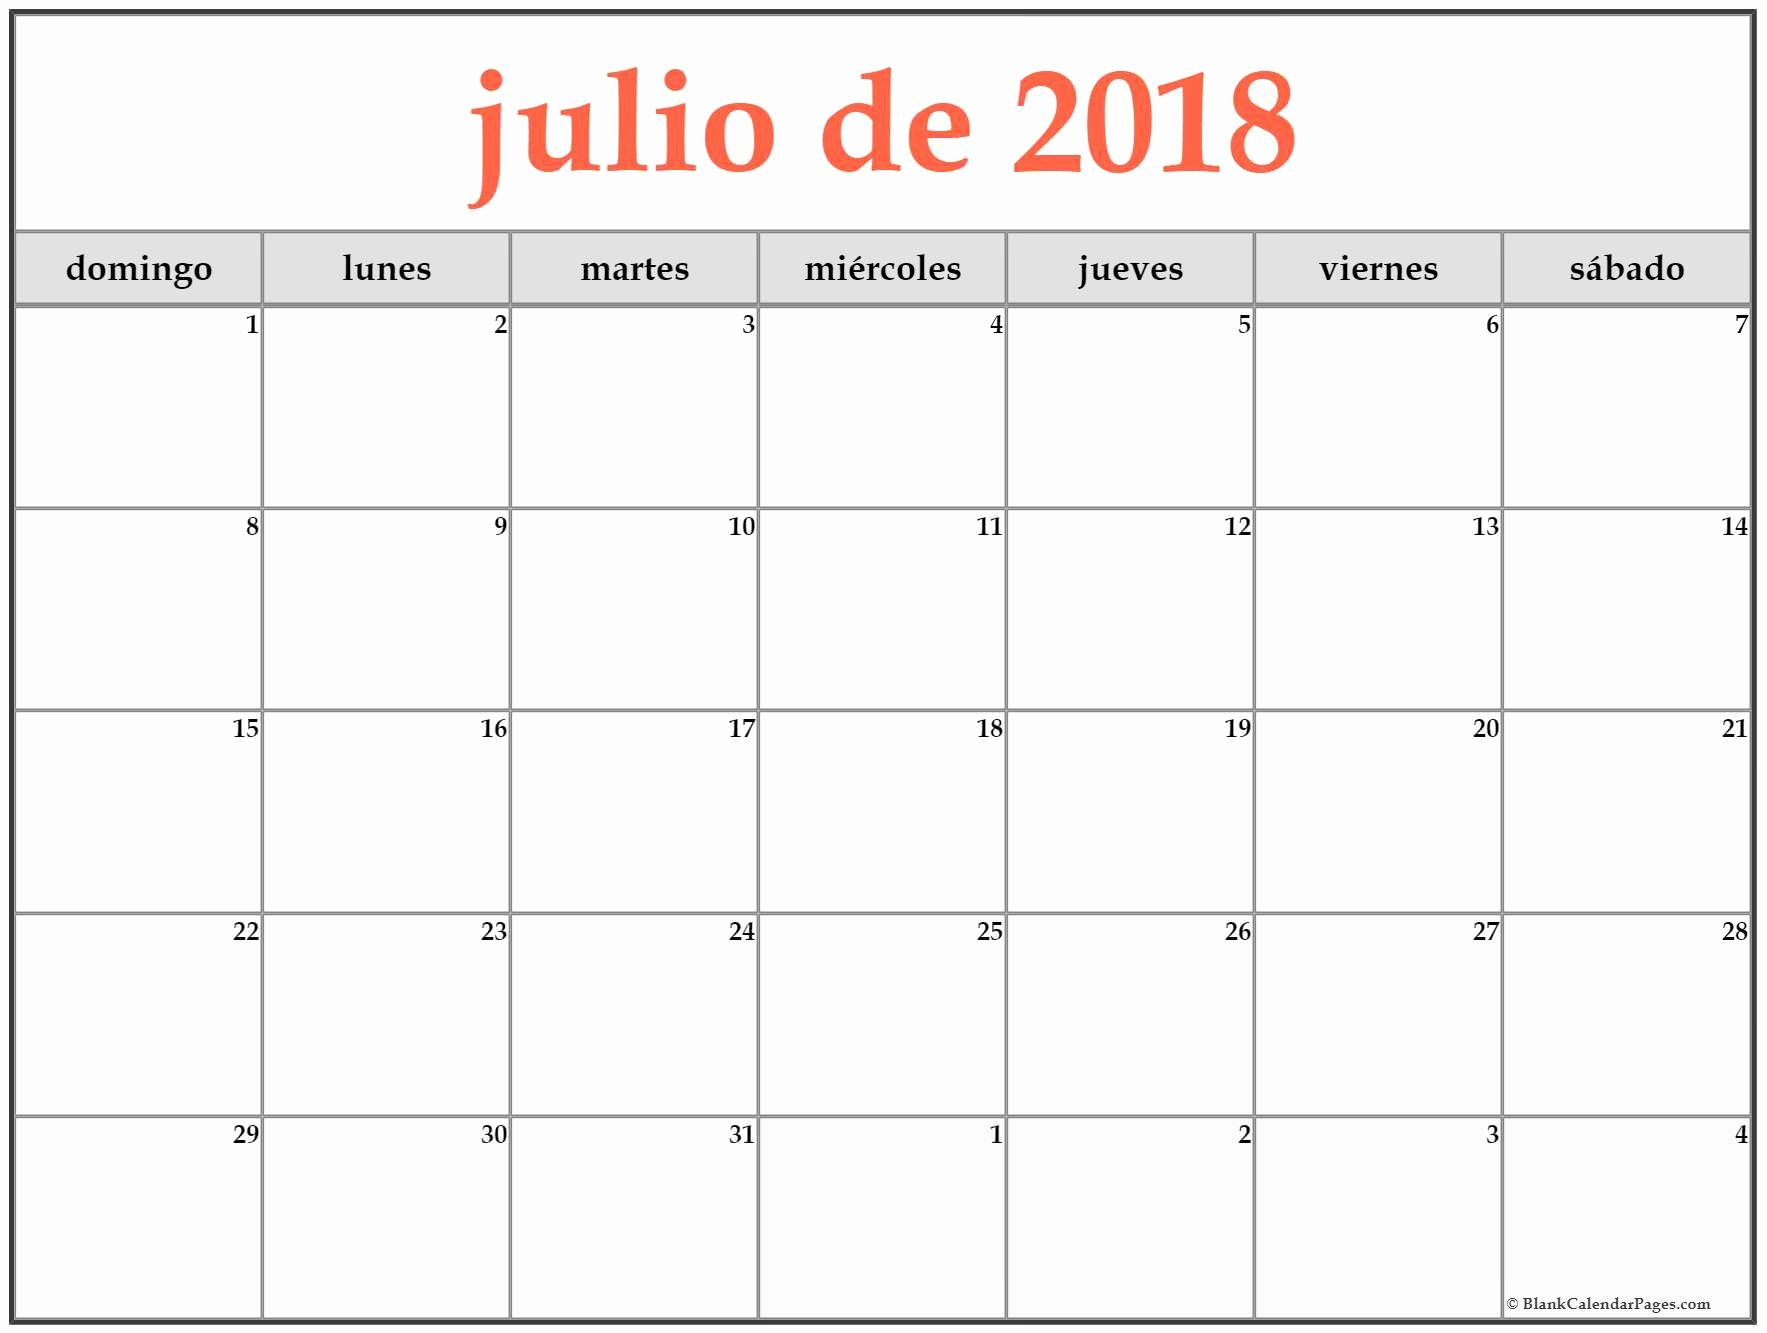 Calendario 2019 Semana Santa Y Pascua Actual Fresh 45 Ilustraci³n Cambridge House Calendario 2019 Of Calendario 2019 Semana Santa Y Pascua Más Reciente Calaméo Plan Anual Centro 16 17